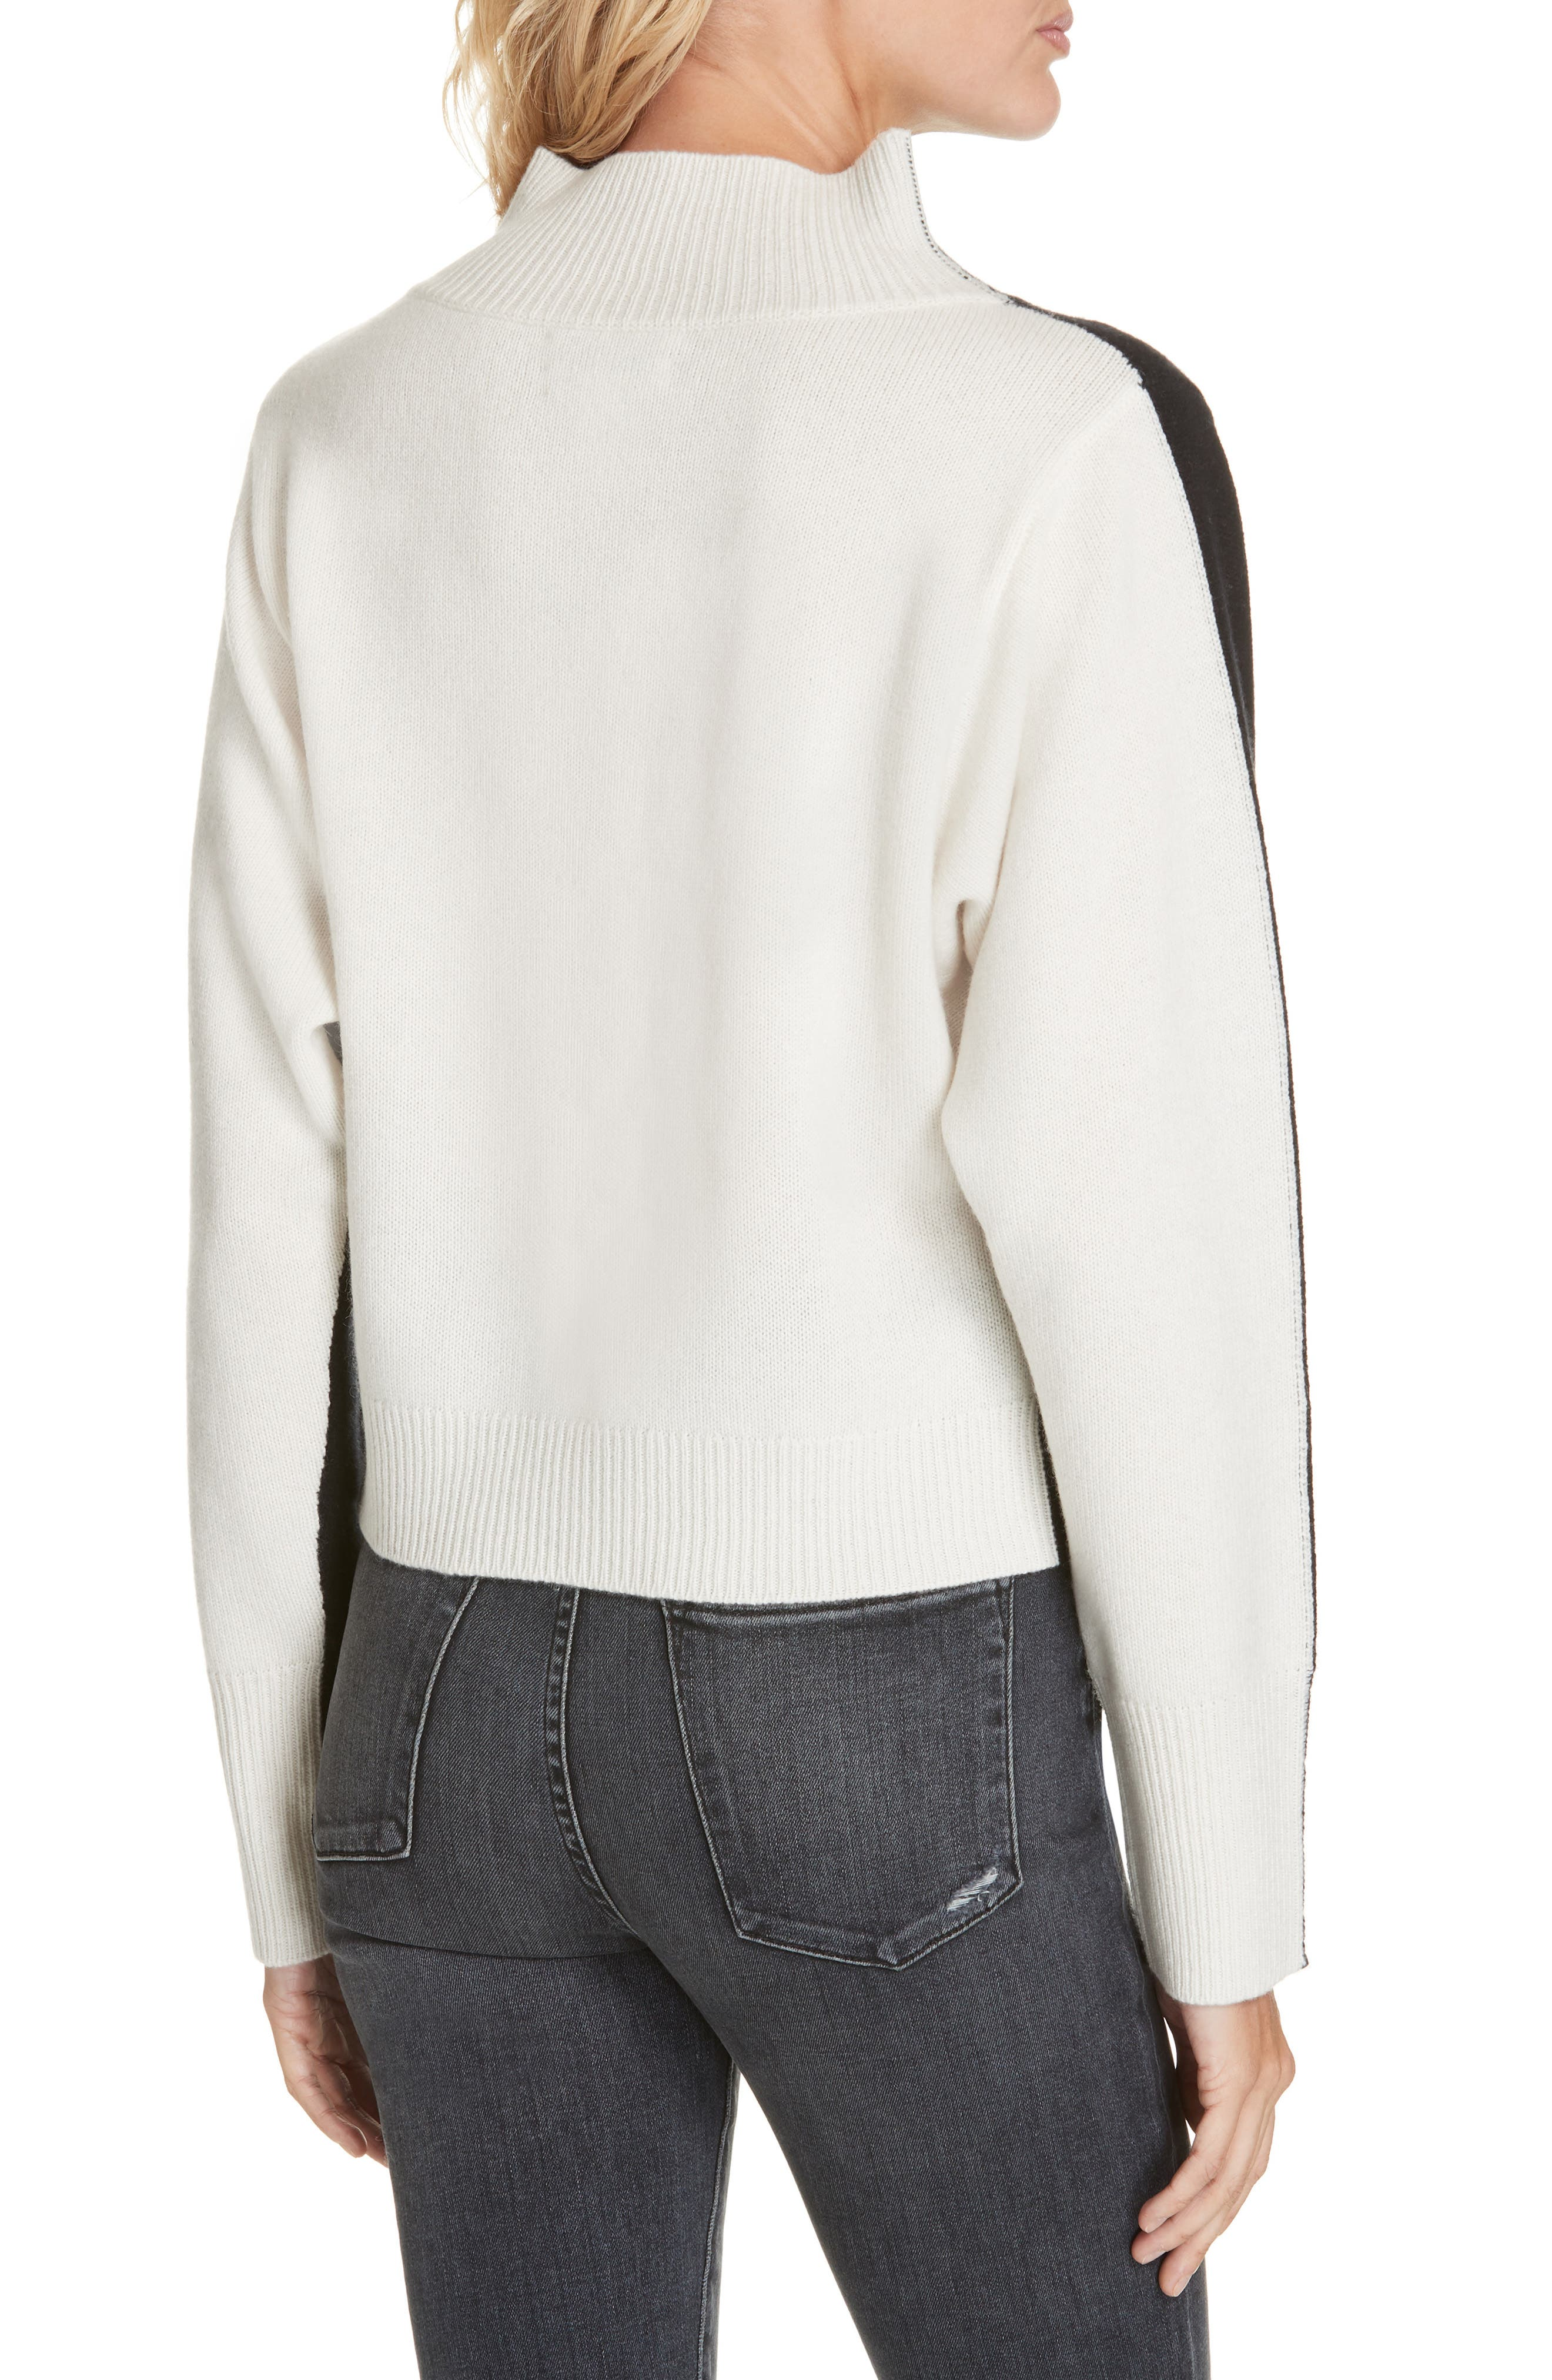 NORDSTROM SIGNATURE, Colorblock Cashmere Sweater, Alternate thumbnail 2, color, BLACK- IVORY COMBO